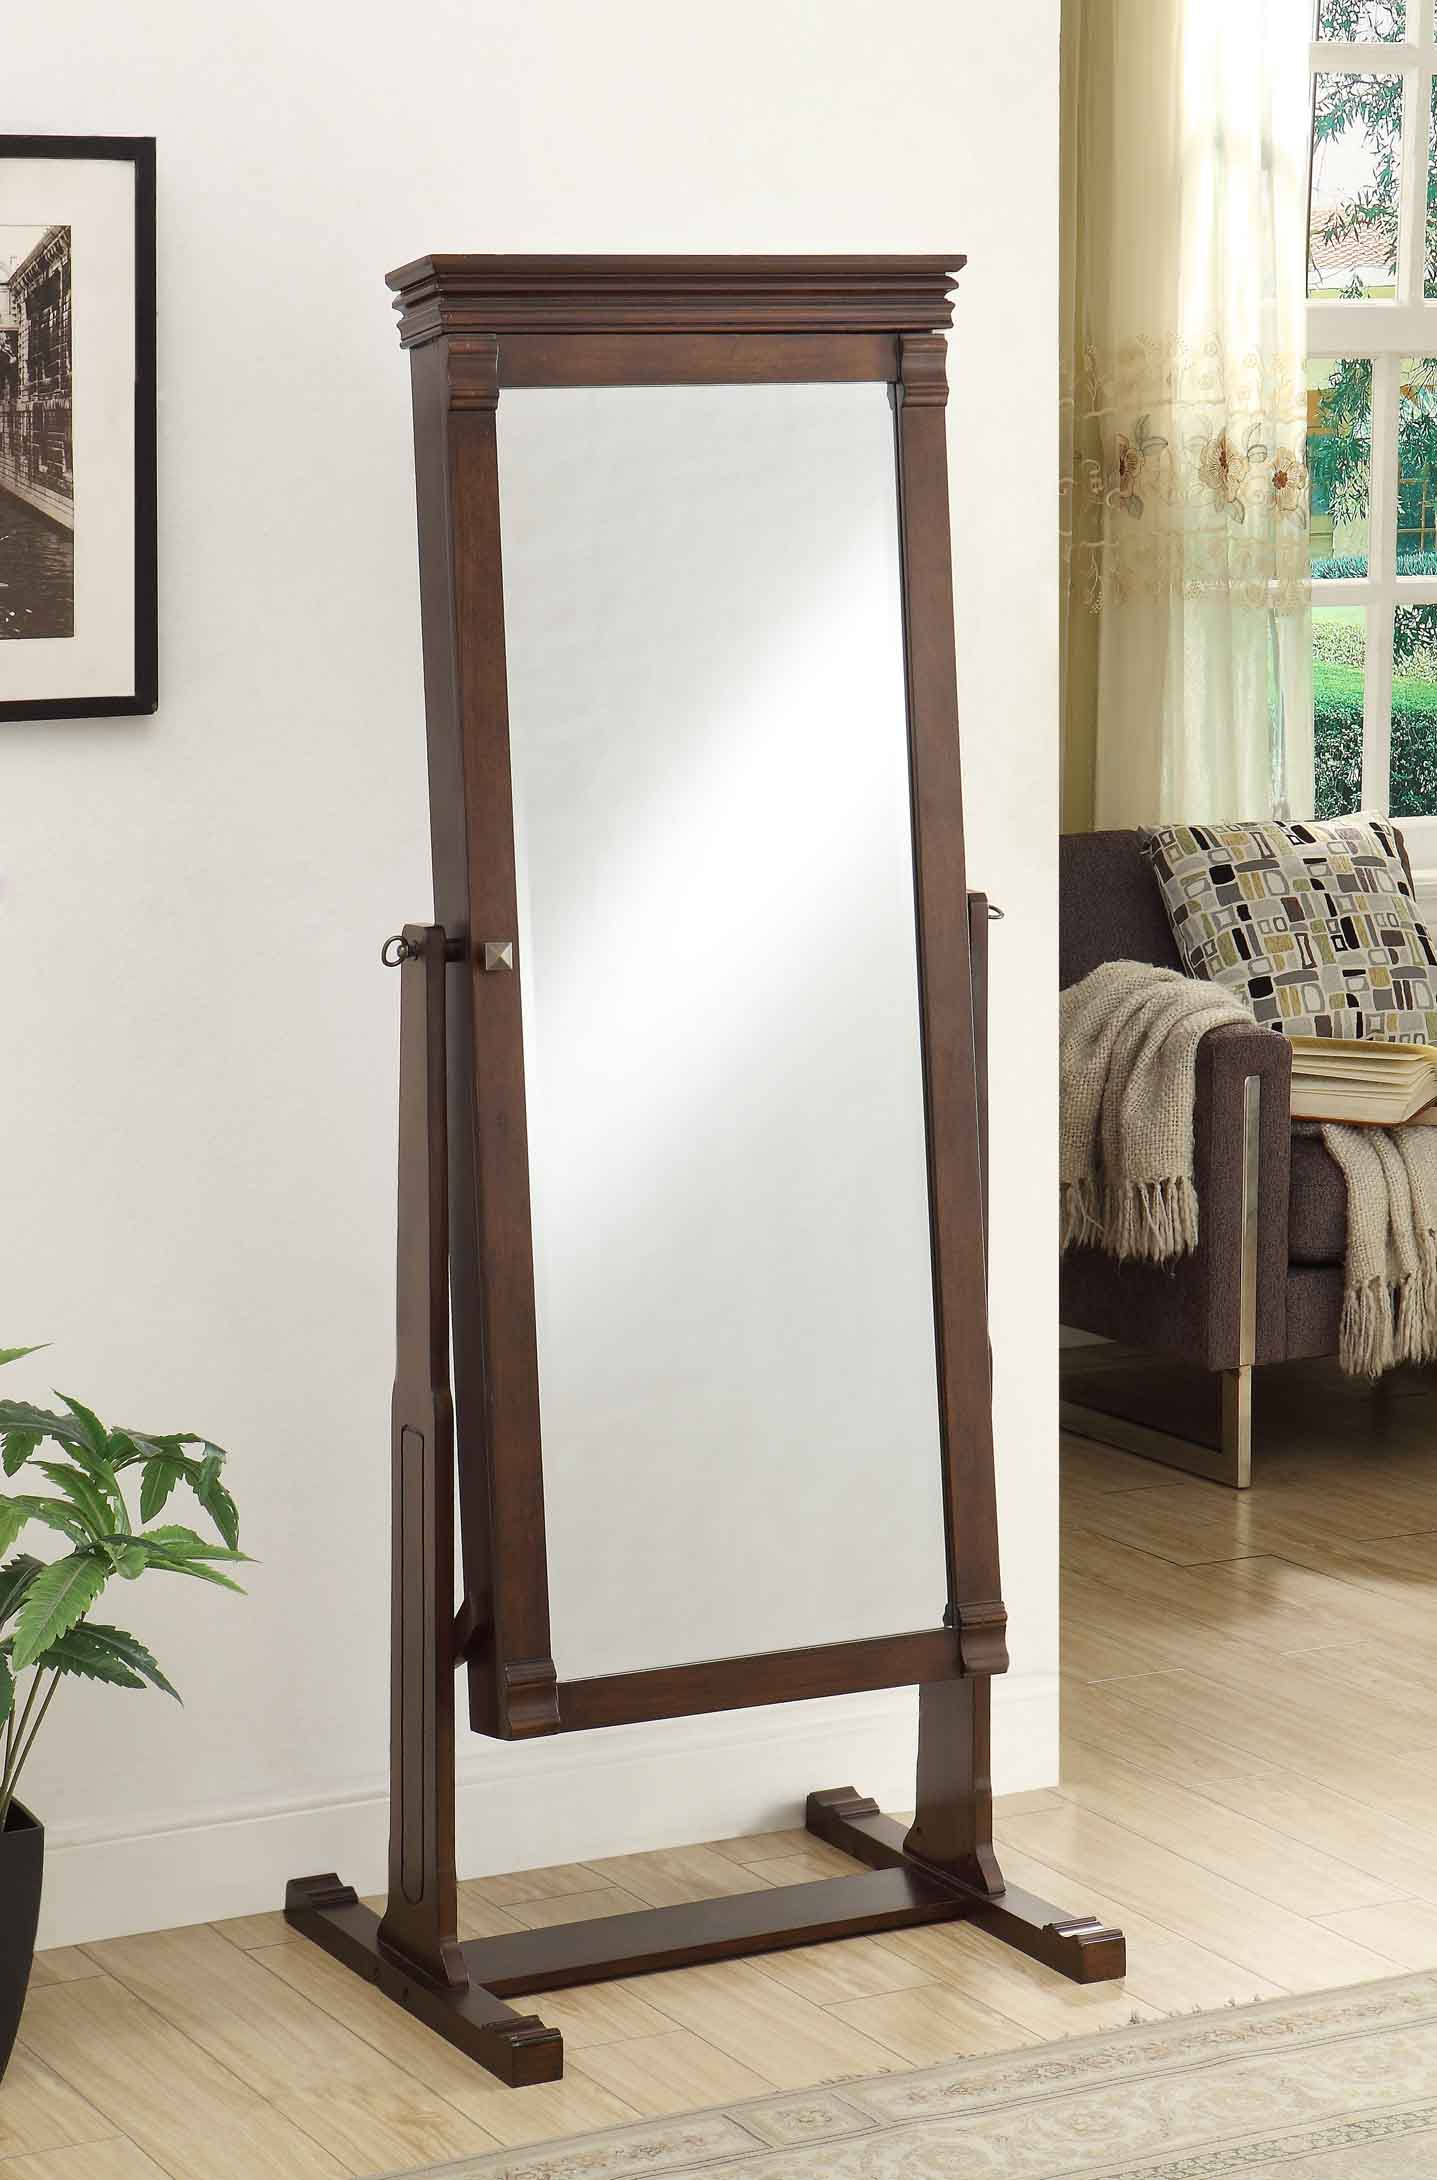 Linon Angela Cheval Mirror, Walnut, 63 inches High by Linon